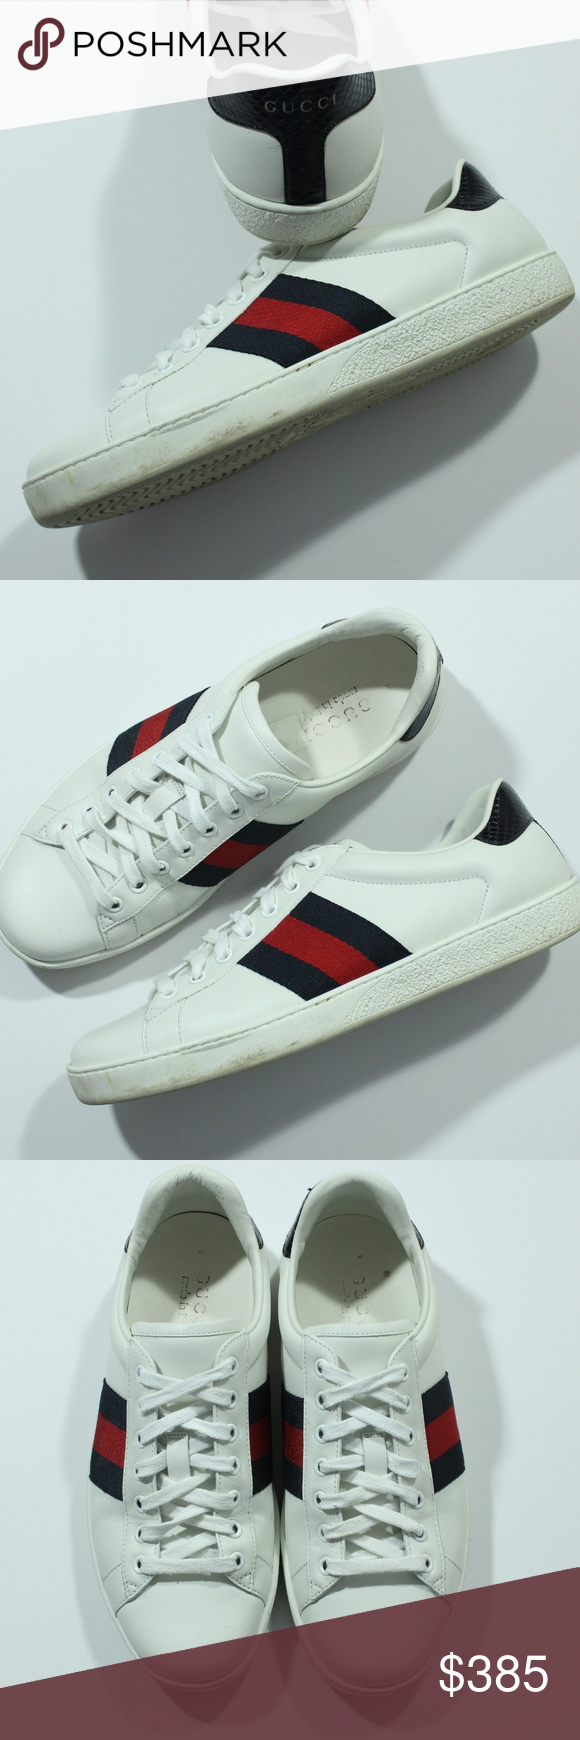 79c13e35f Authentic Gucci Ace Leather Sneaker White Navy Red Authentic Gucci Ace  Leather Sneaker White Navy Red